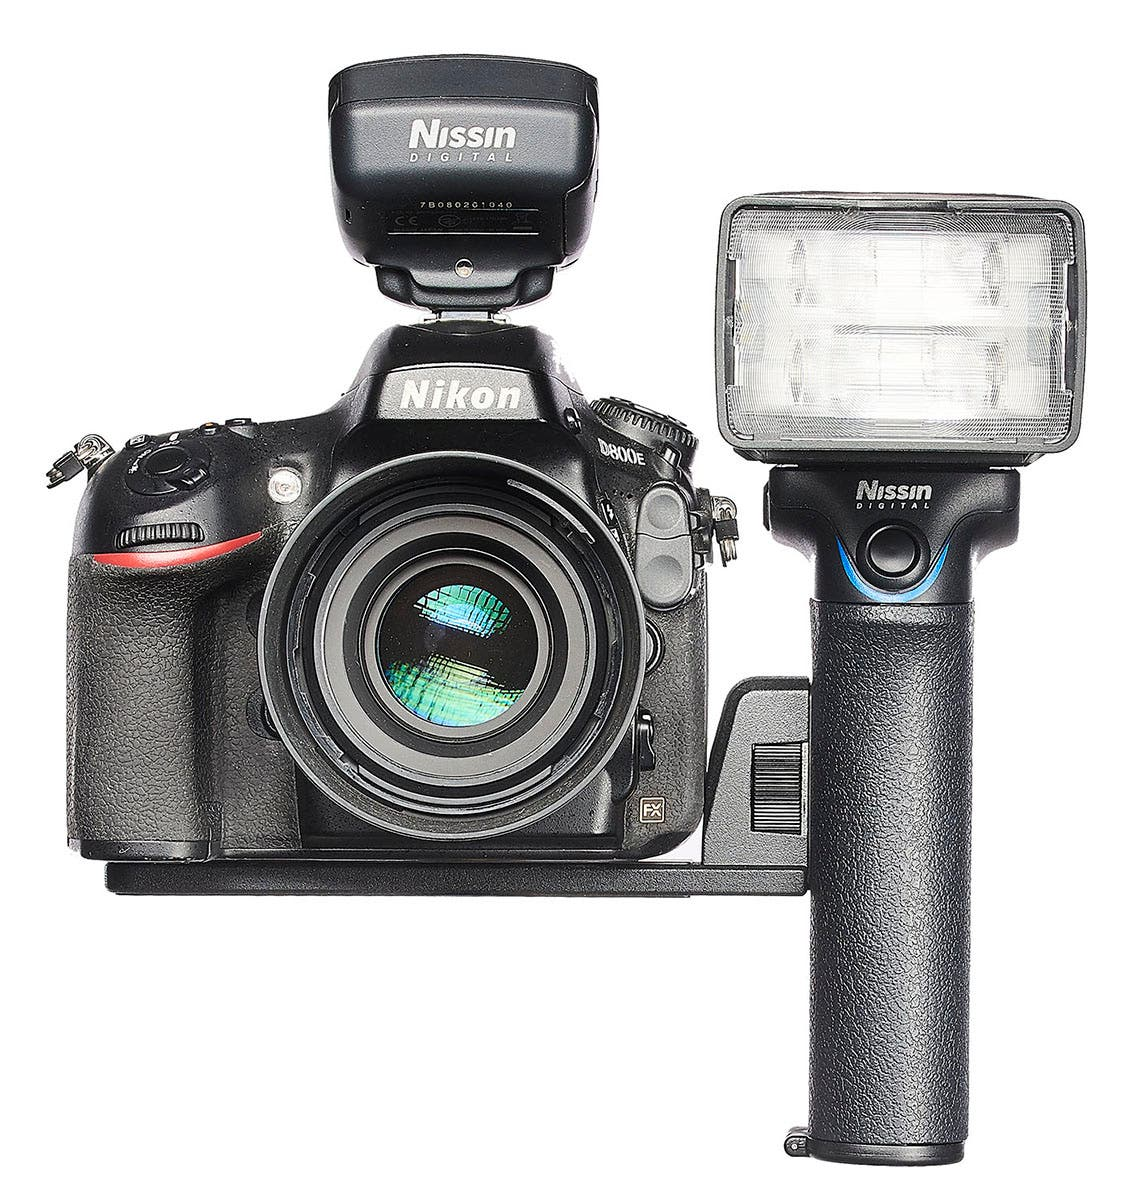 The Nissin MG10 Multi-Purpose Wireless Strobe Is Basically a Bracket Flash